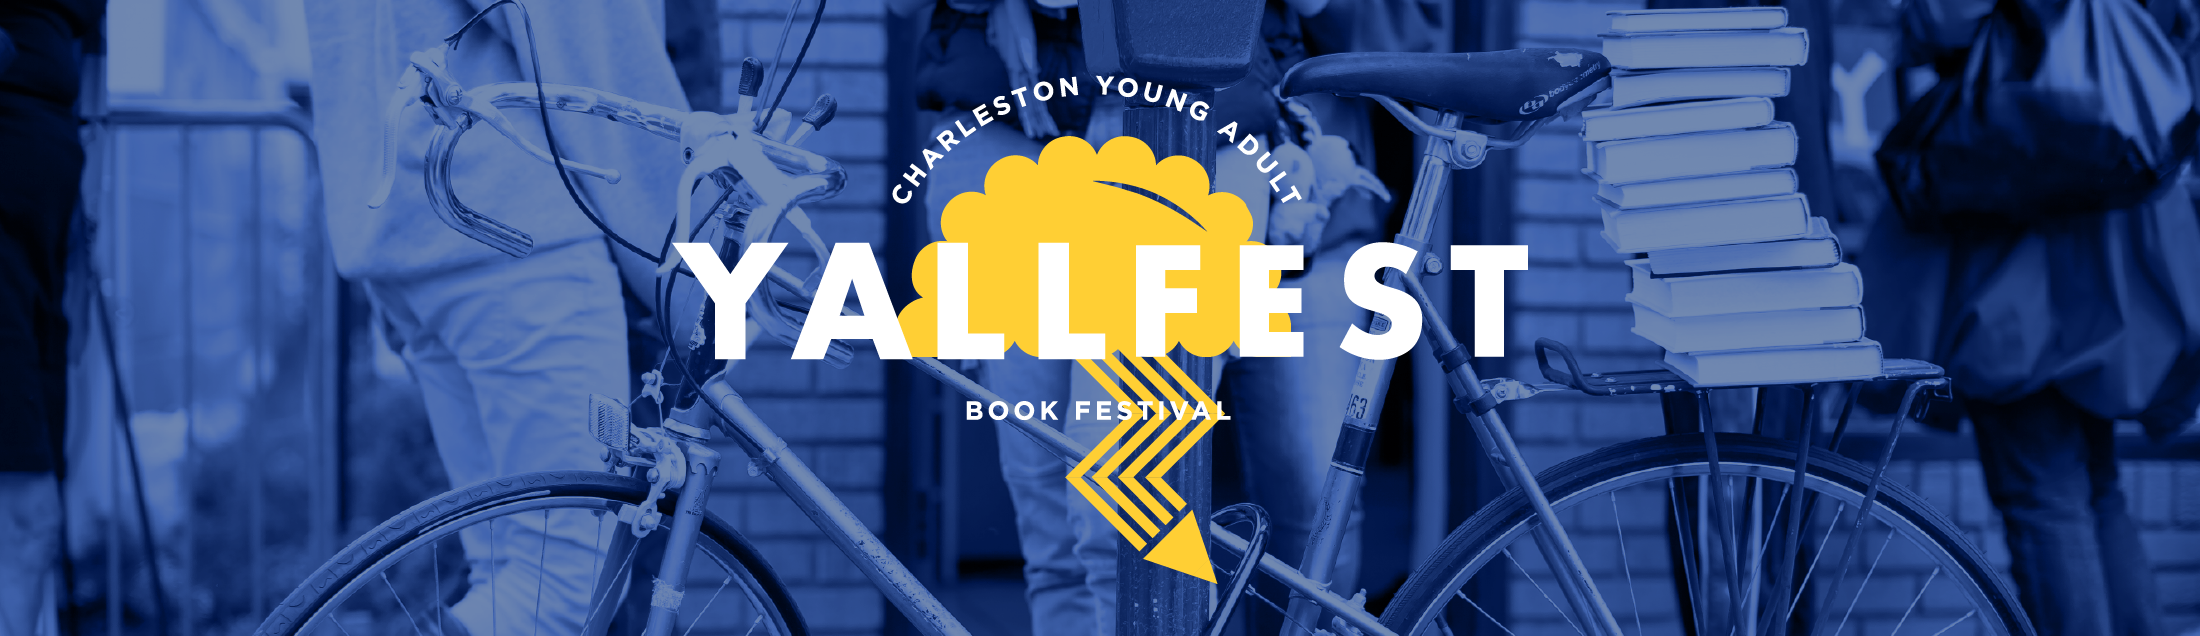 Megan will once more be speaking and signing at YALLFEST in Charleston, SC!  https://www.yallfest.org/authors/megan-shepherd/